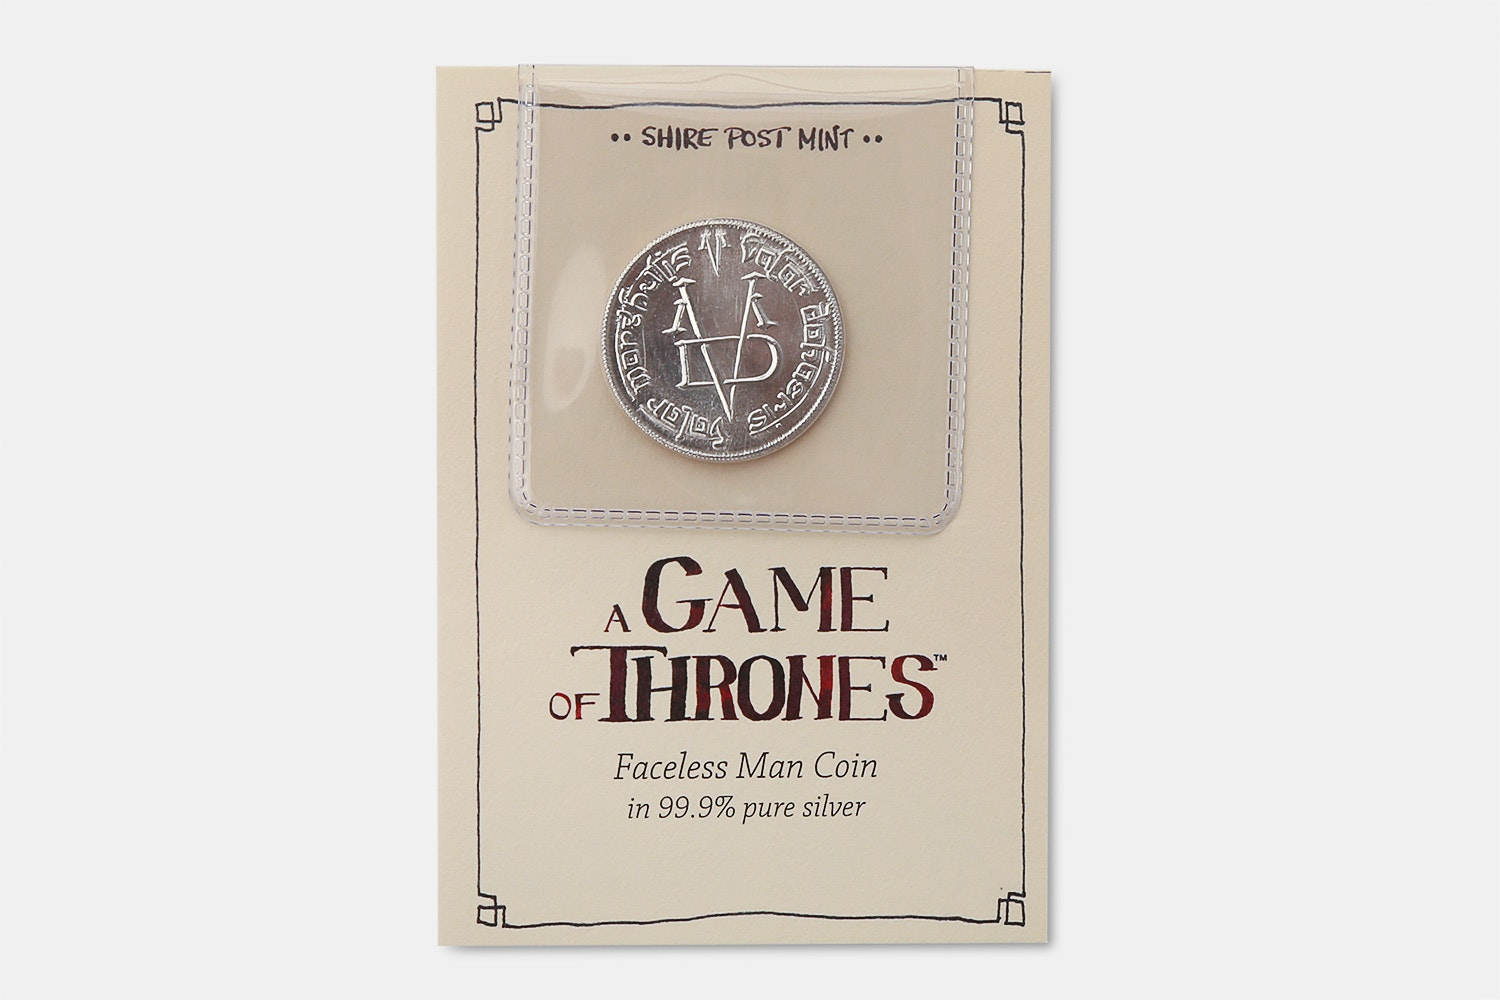 Pure Silver Coin of the Faceless Man